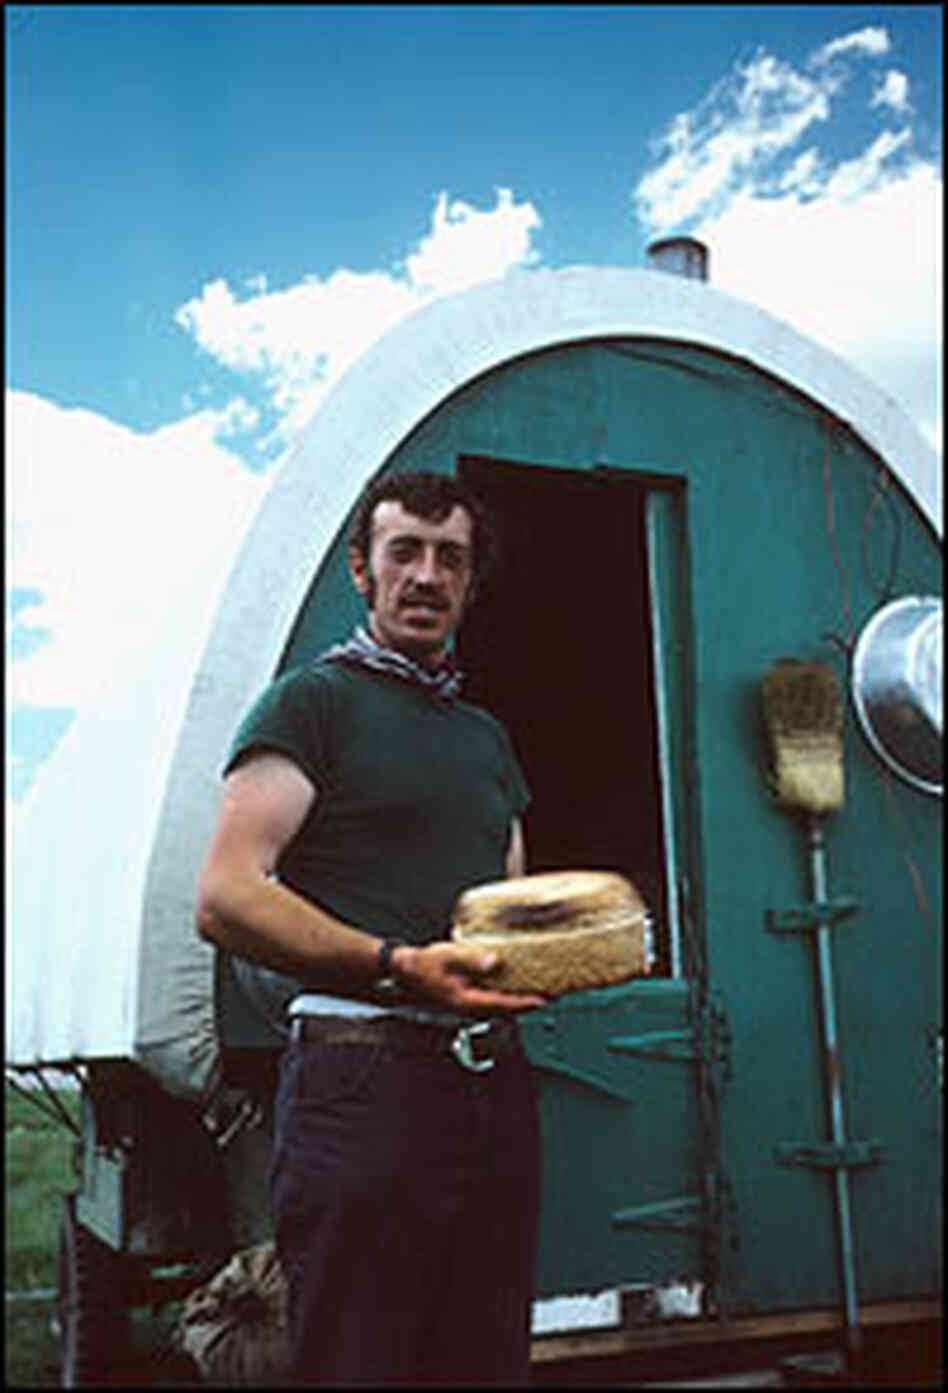 A herder holds freshly baked bread outside his wagon.